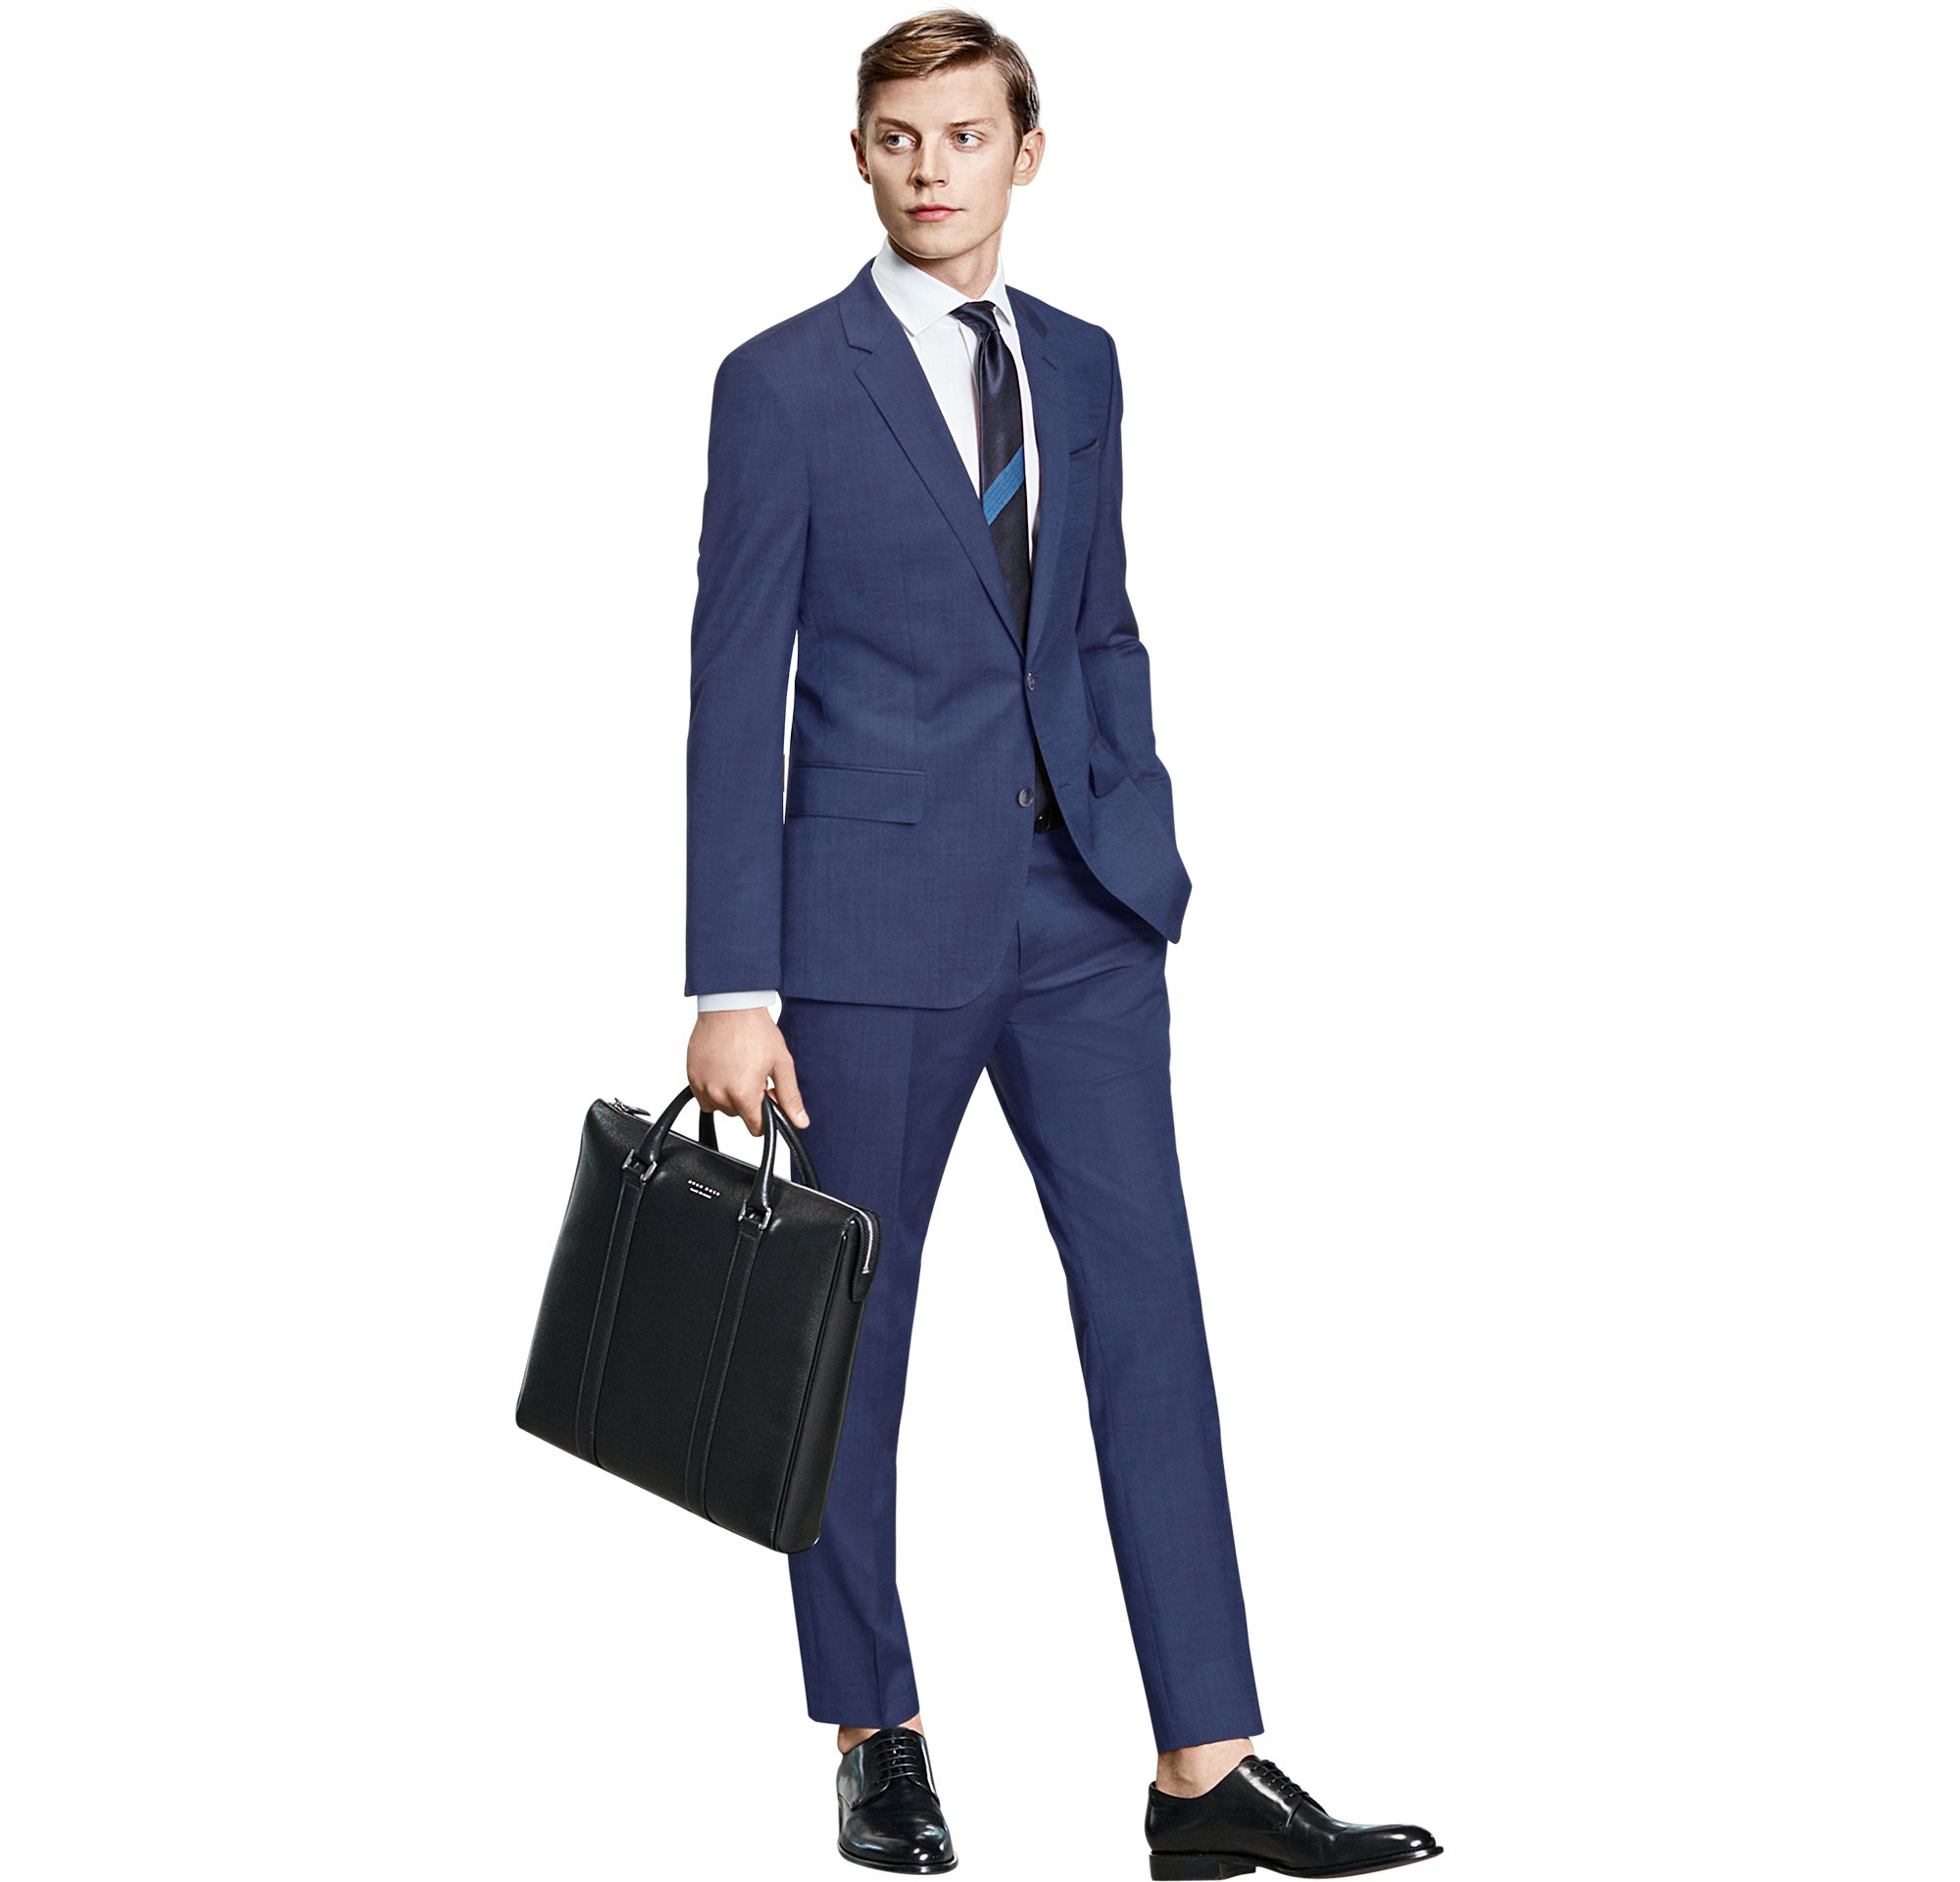 Jacket, shirt, trousers, bag and shoes by BOSS Menswear